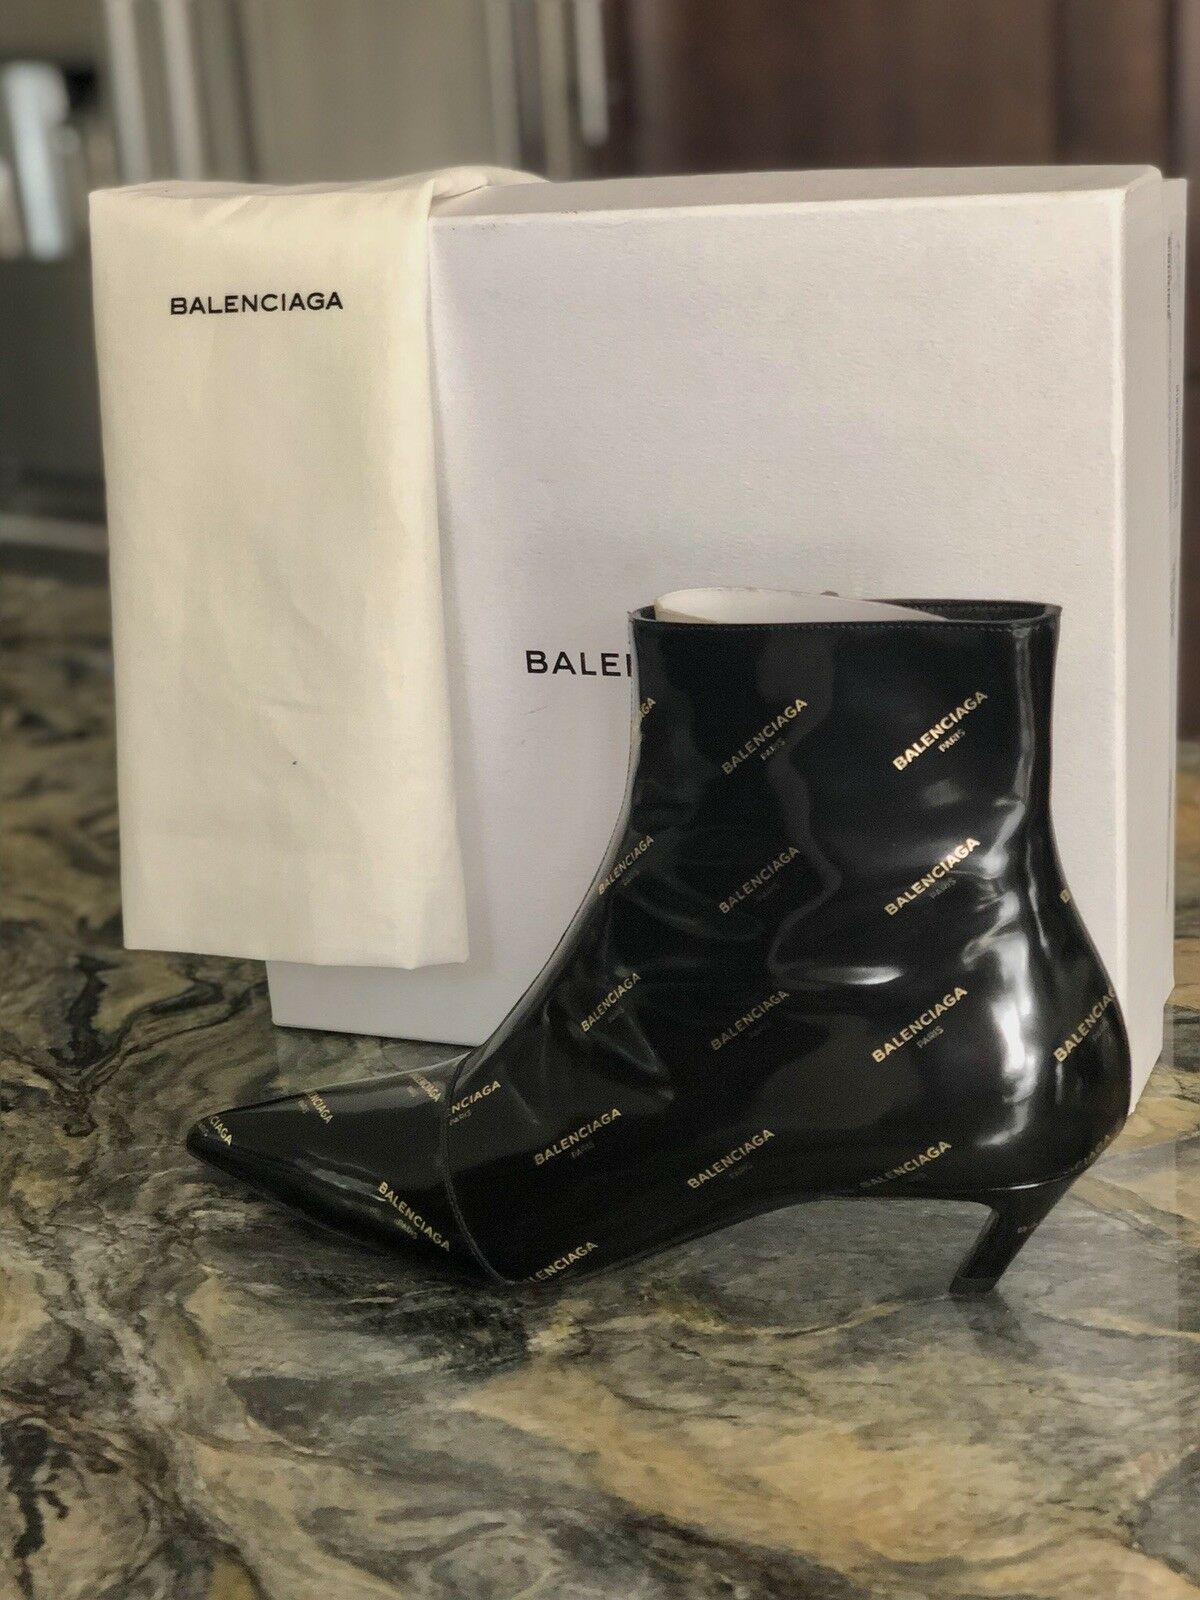 NIB BALENCIAGA BLACK LEATHER ALL OVER LOGO KNIFE KNIFE KNIFE ANKLE BOOTS 40.5 EU - 10 US fc1f93